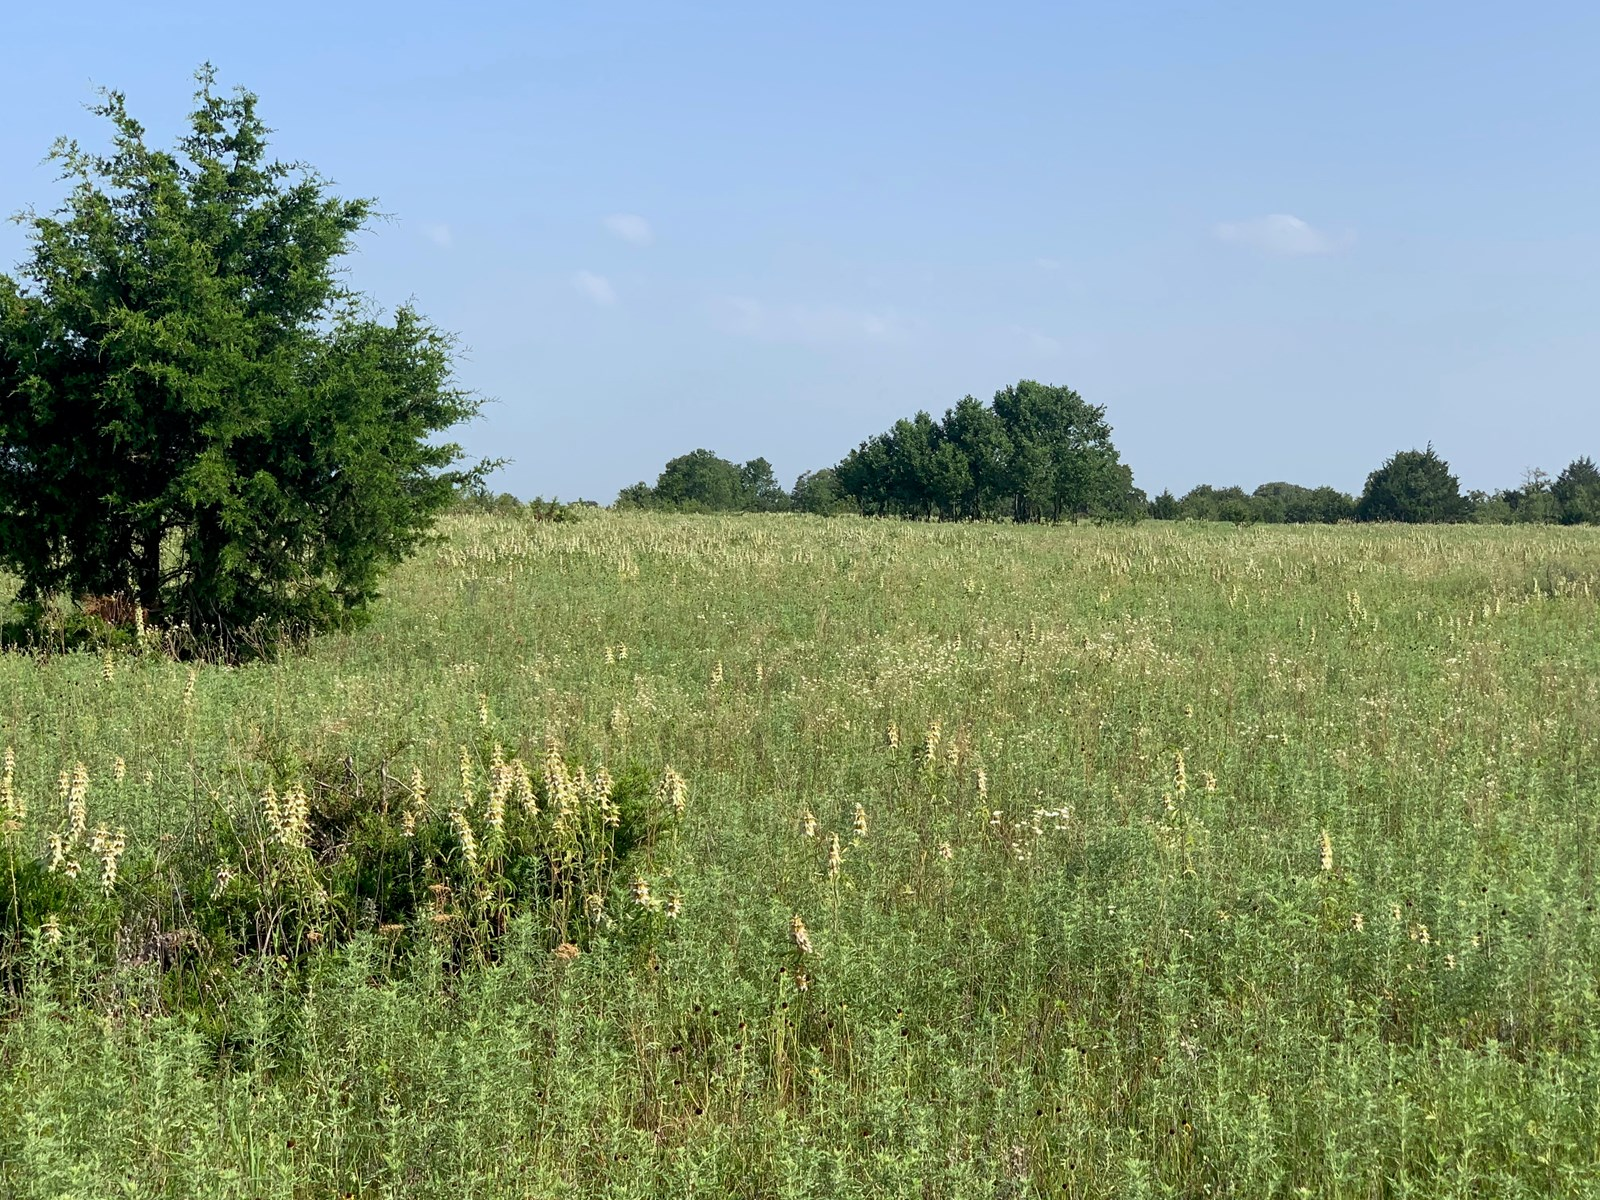 SOUTHERN OKLAHOMA RAW LAND FOR SALE/ SUITABLE FOR BUILDING